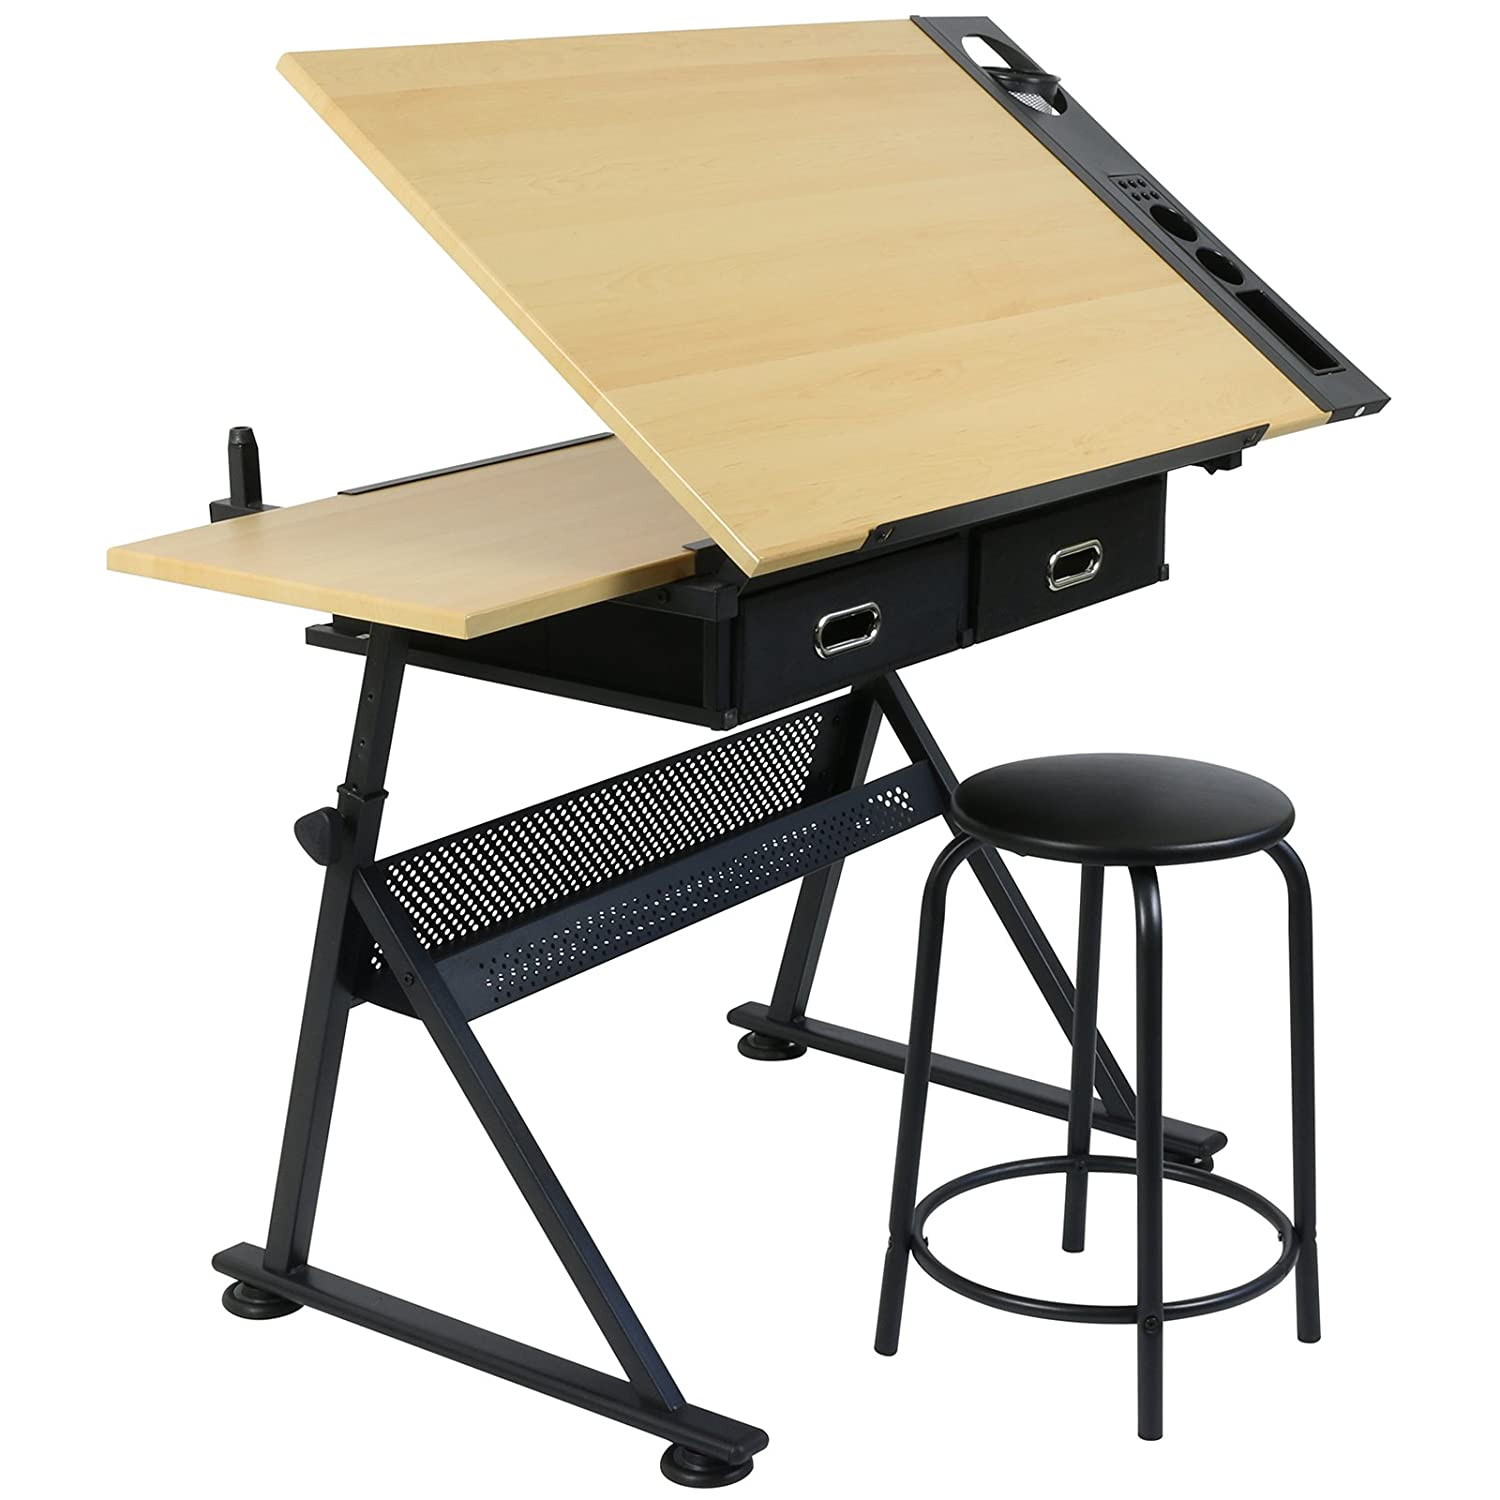 Peachy Hartleys Fully Adjustable Drawing Board Includes Desk Stool Download Free Architecture Designs Embacsunscenecom